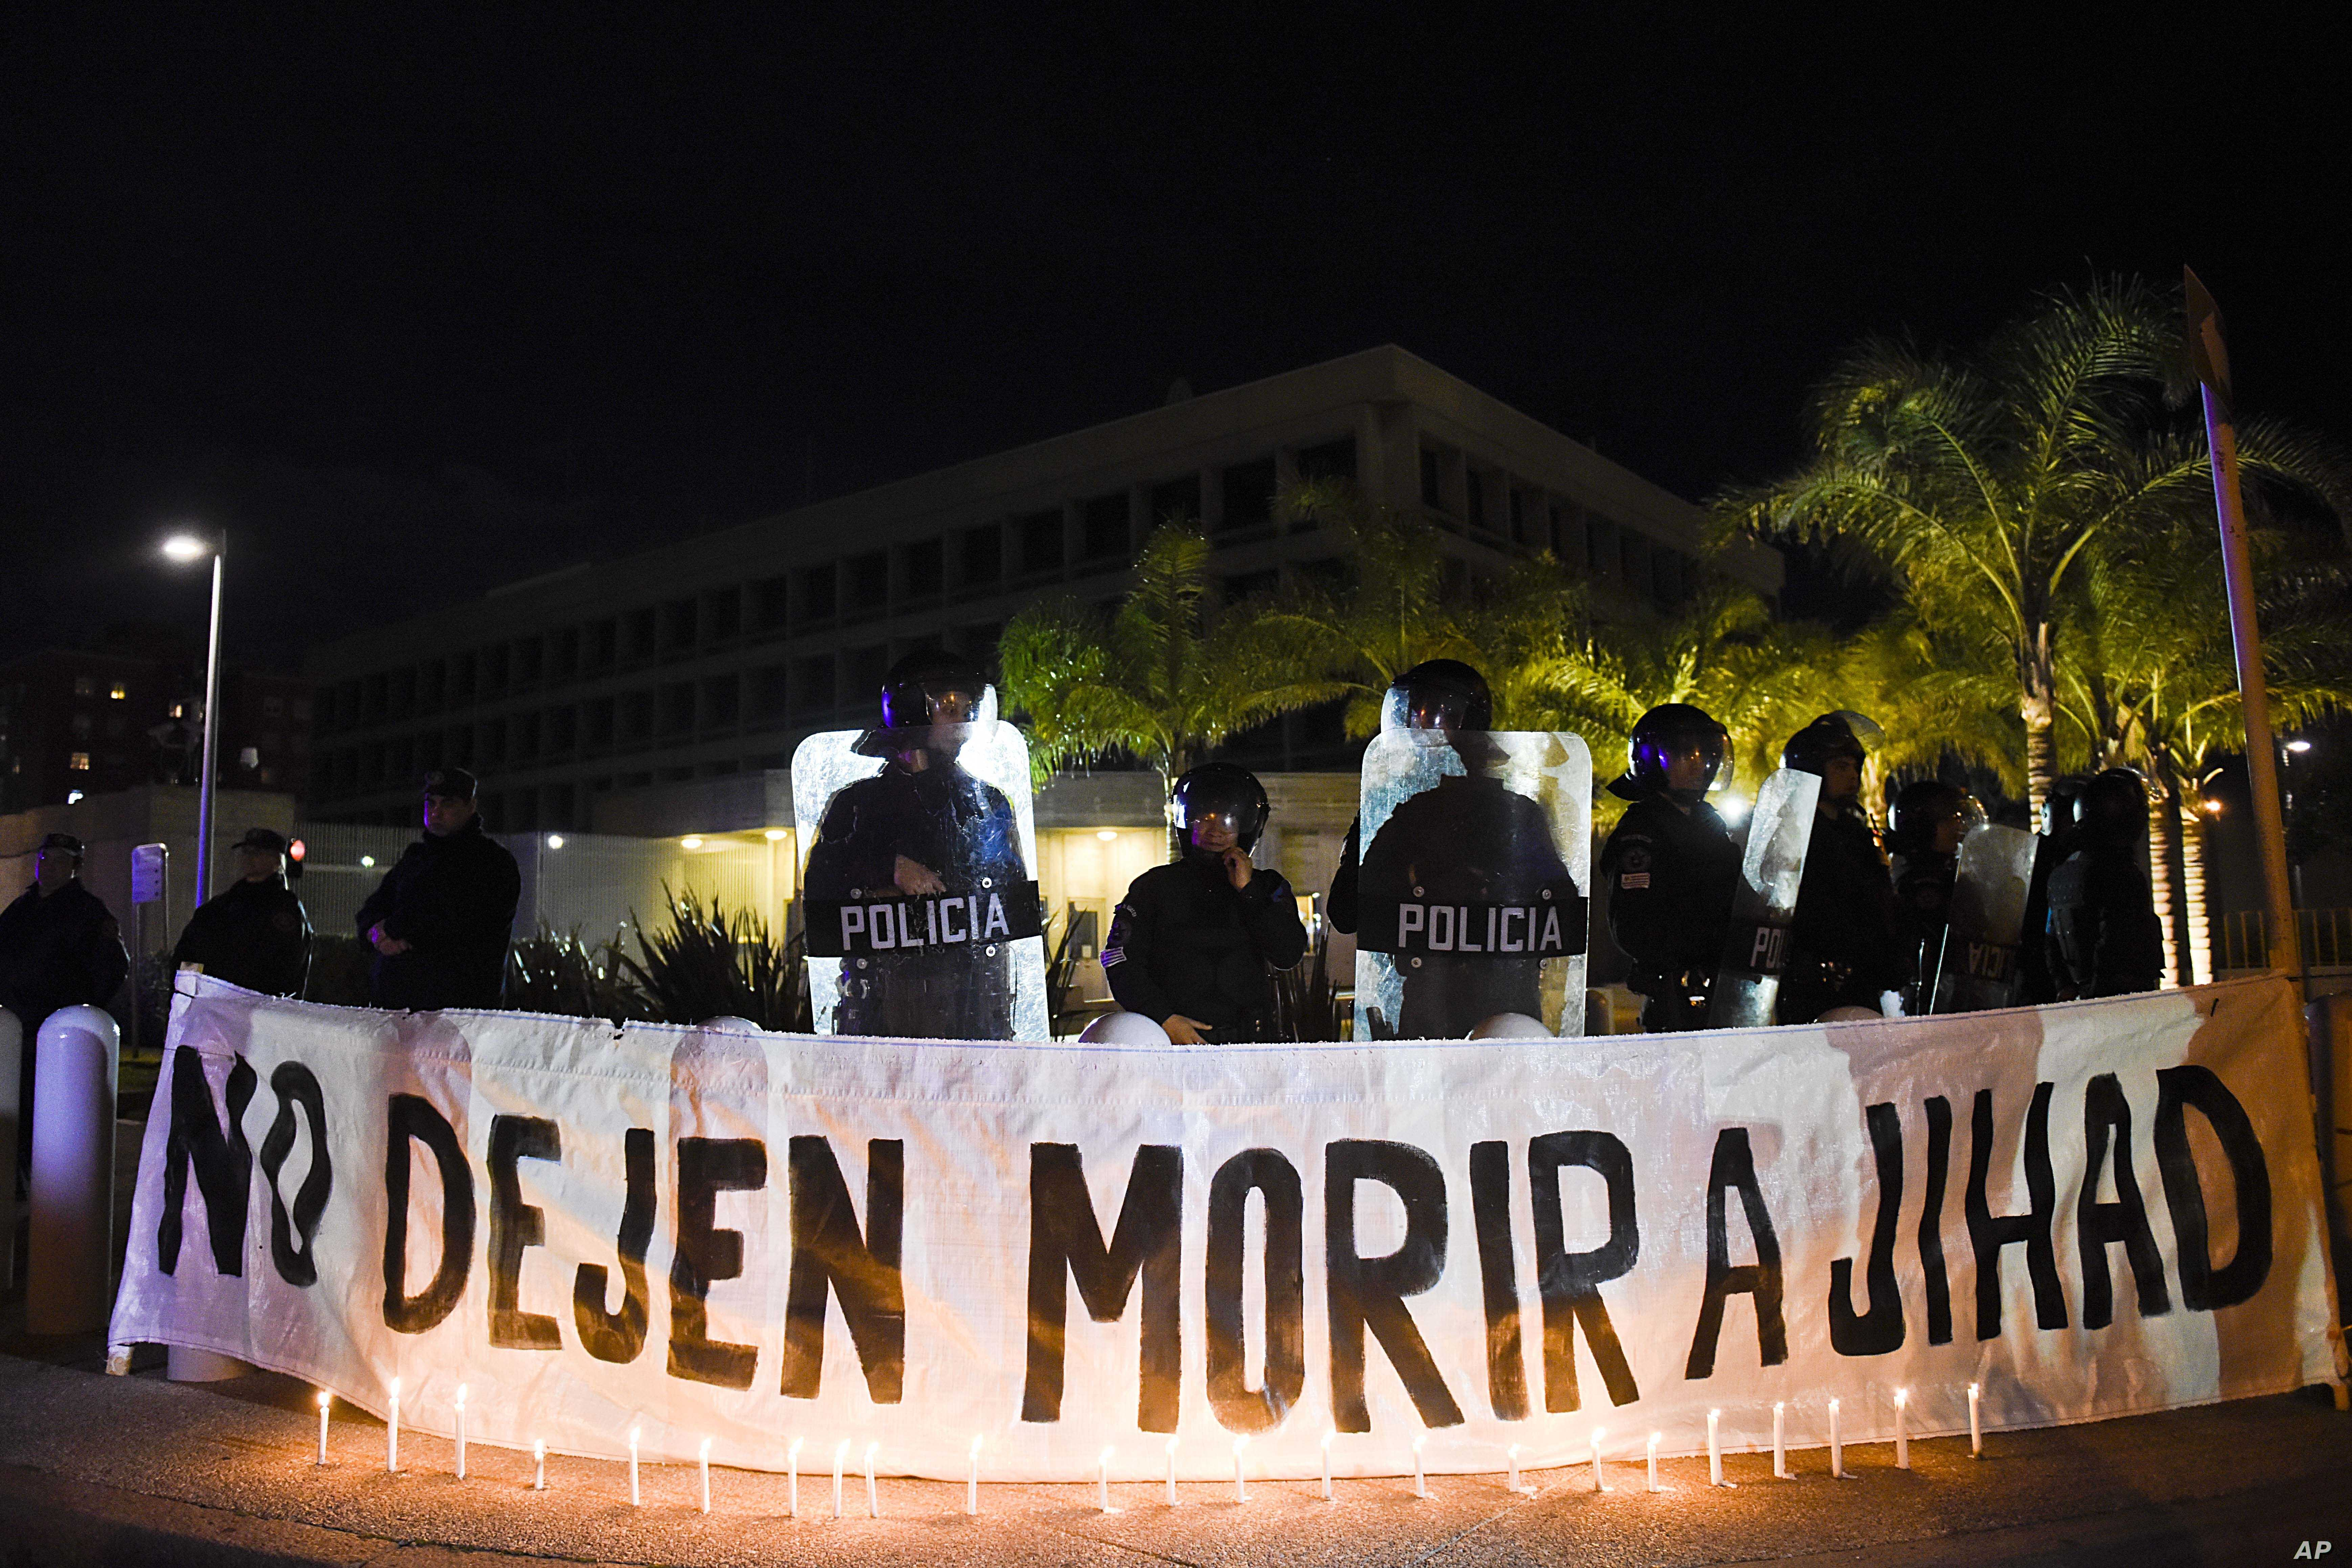 """FILE - A sign that reads in Spanish """"Don't let Jihad die"""" hangs behind candles outside the U.S. embassy during a demonstration in Montevideo, Uruguay, Sept. 16, 2016. Former Guantanamo detainee Abu Wa'el Dhiab from Syria, also called Jihad, was on a ..."""